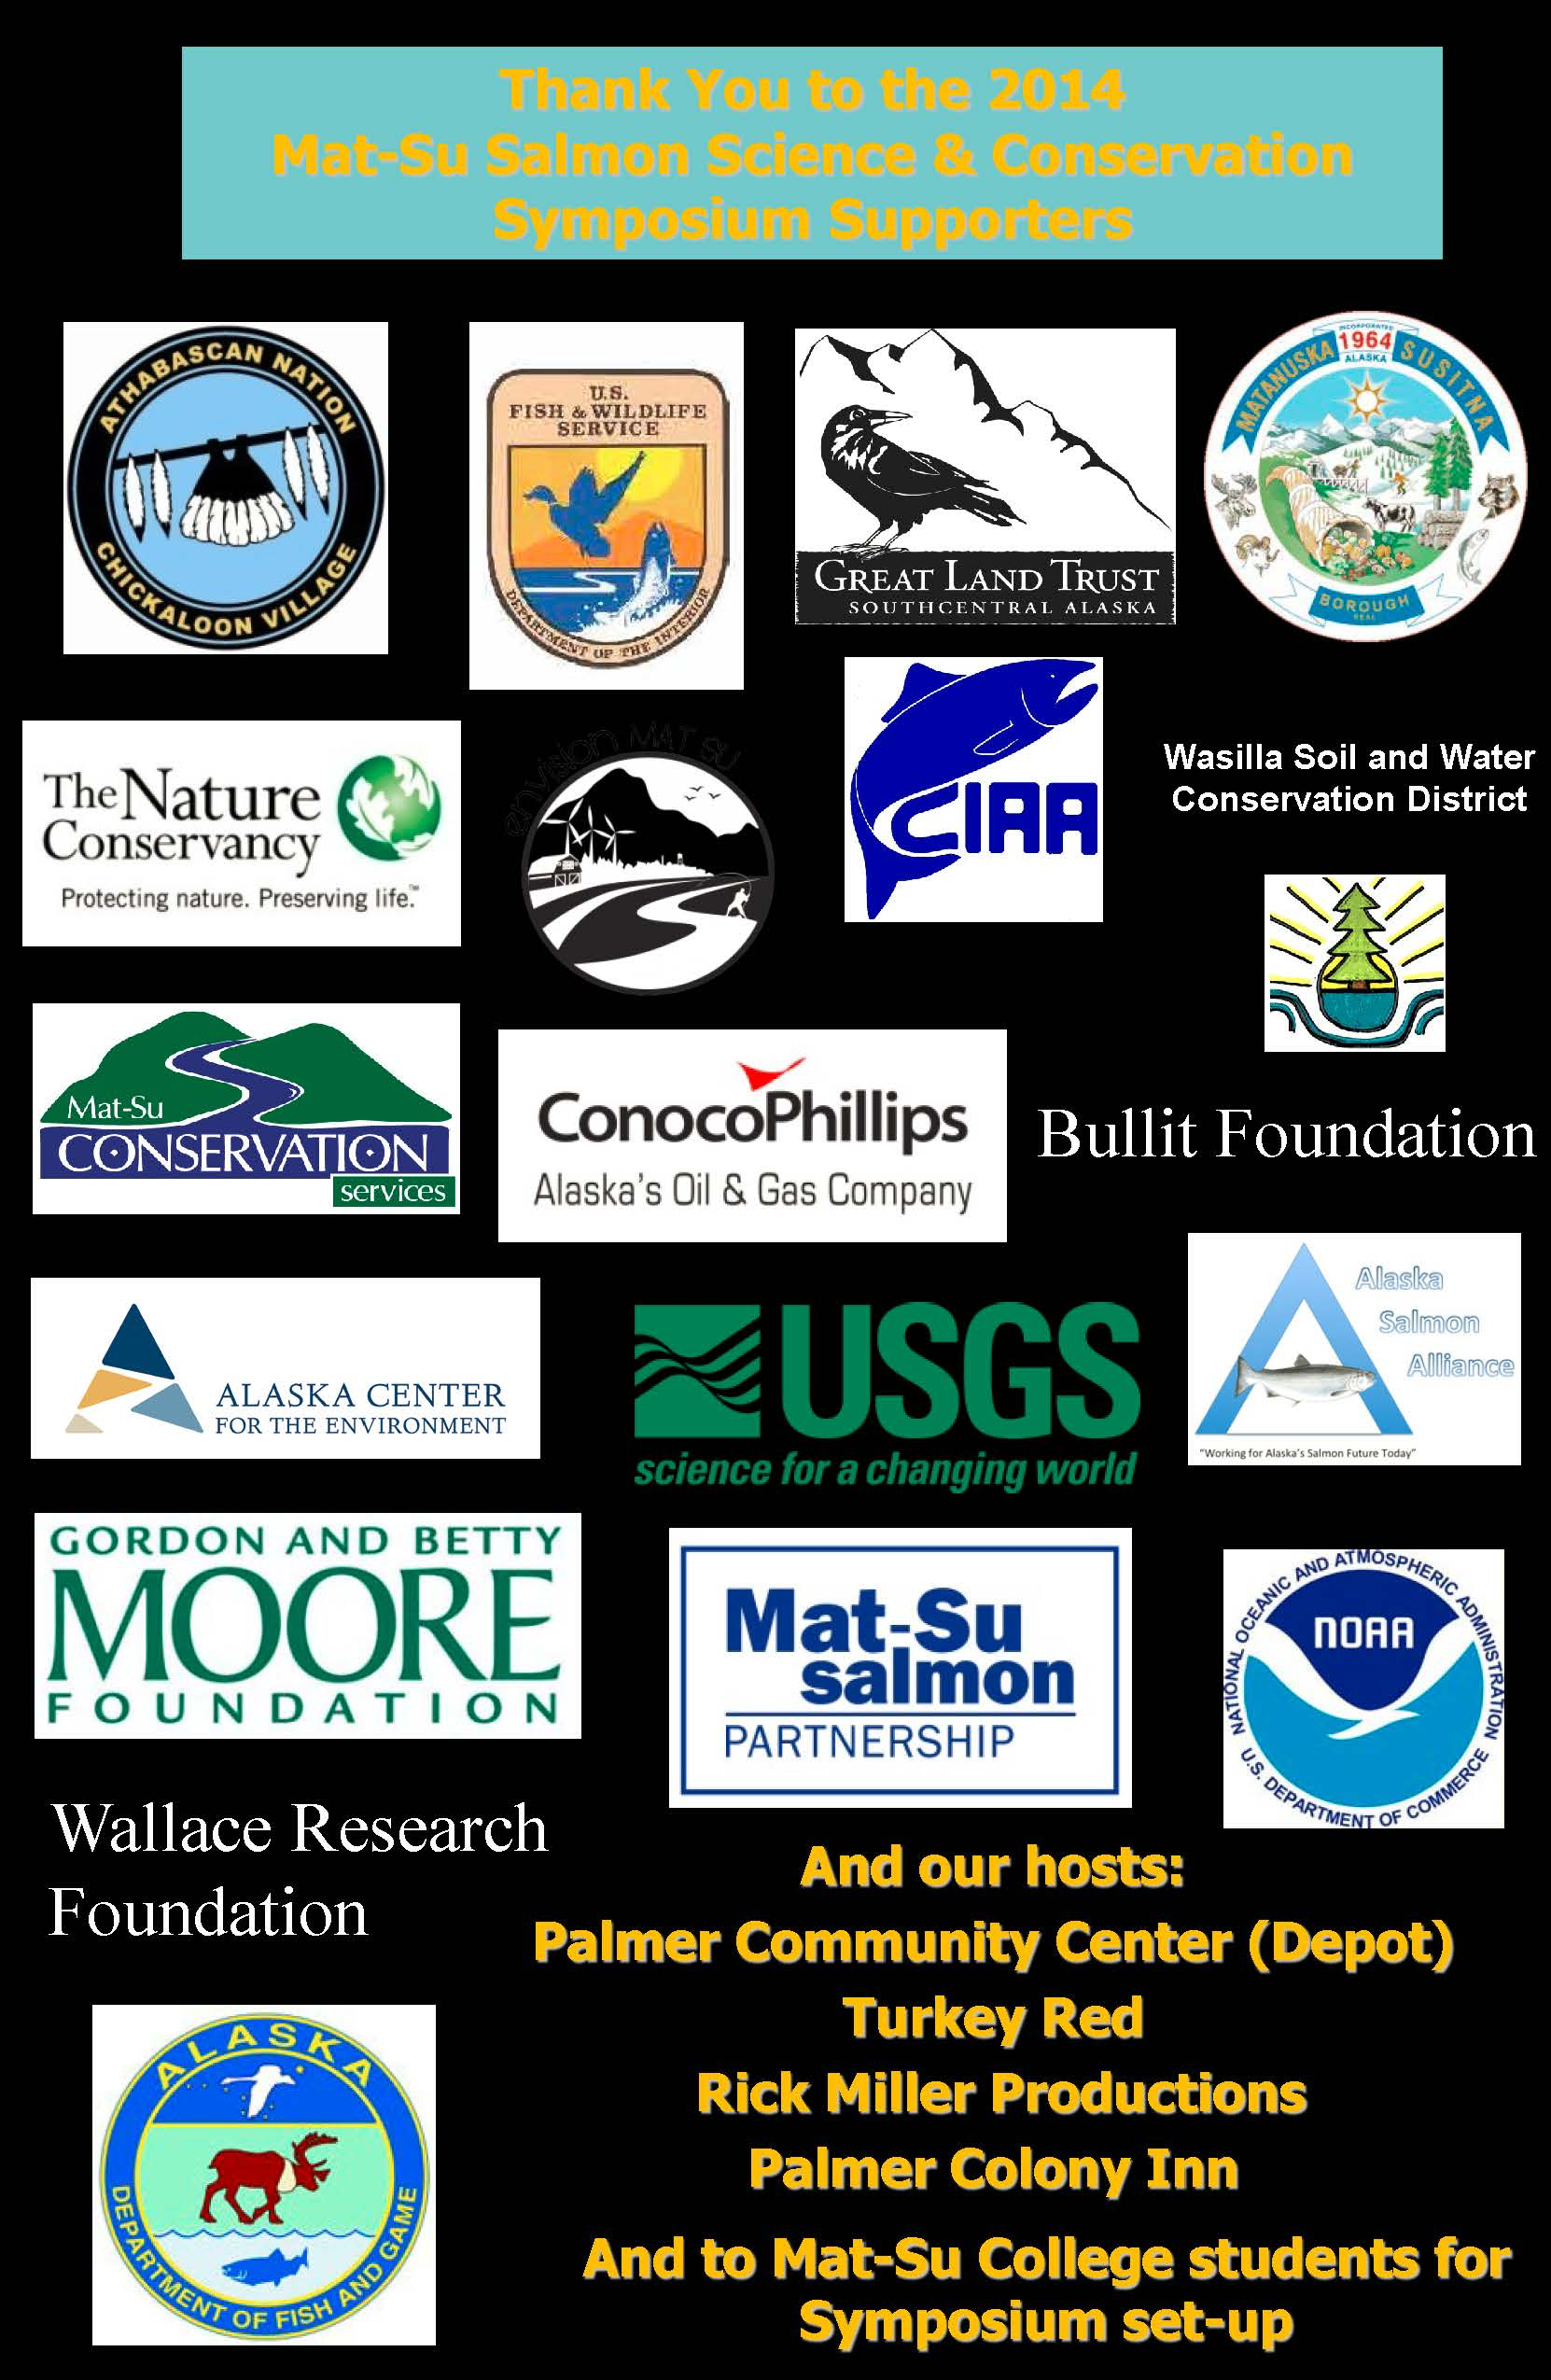 2014 Salmon Symposium Supporters